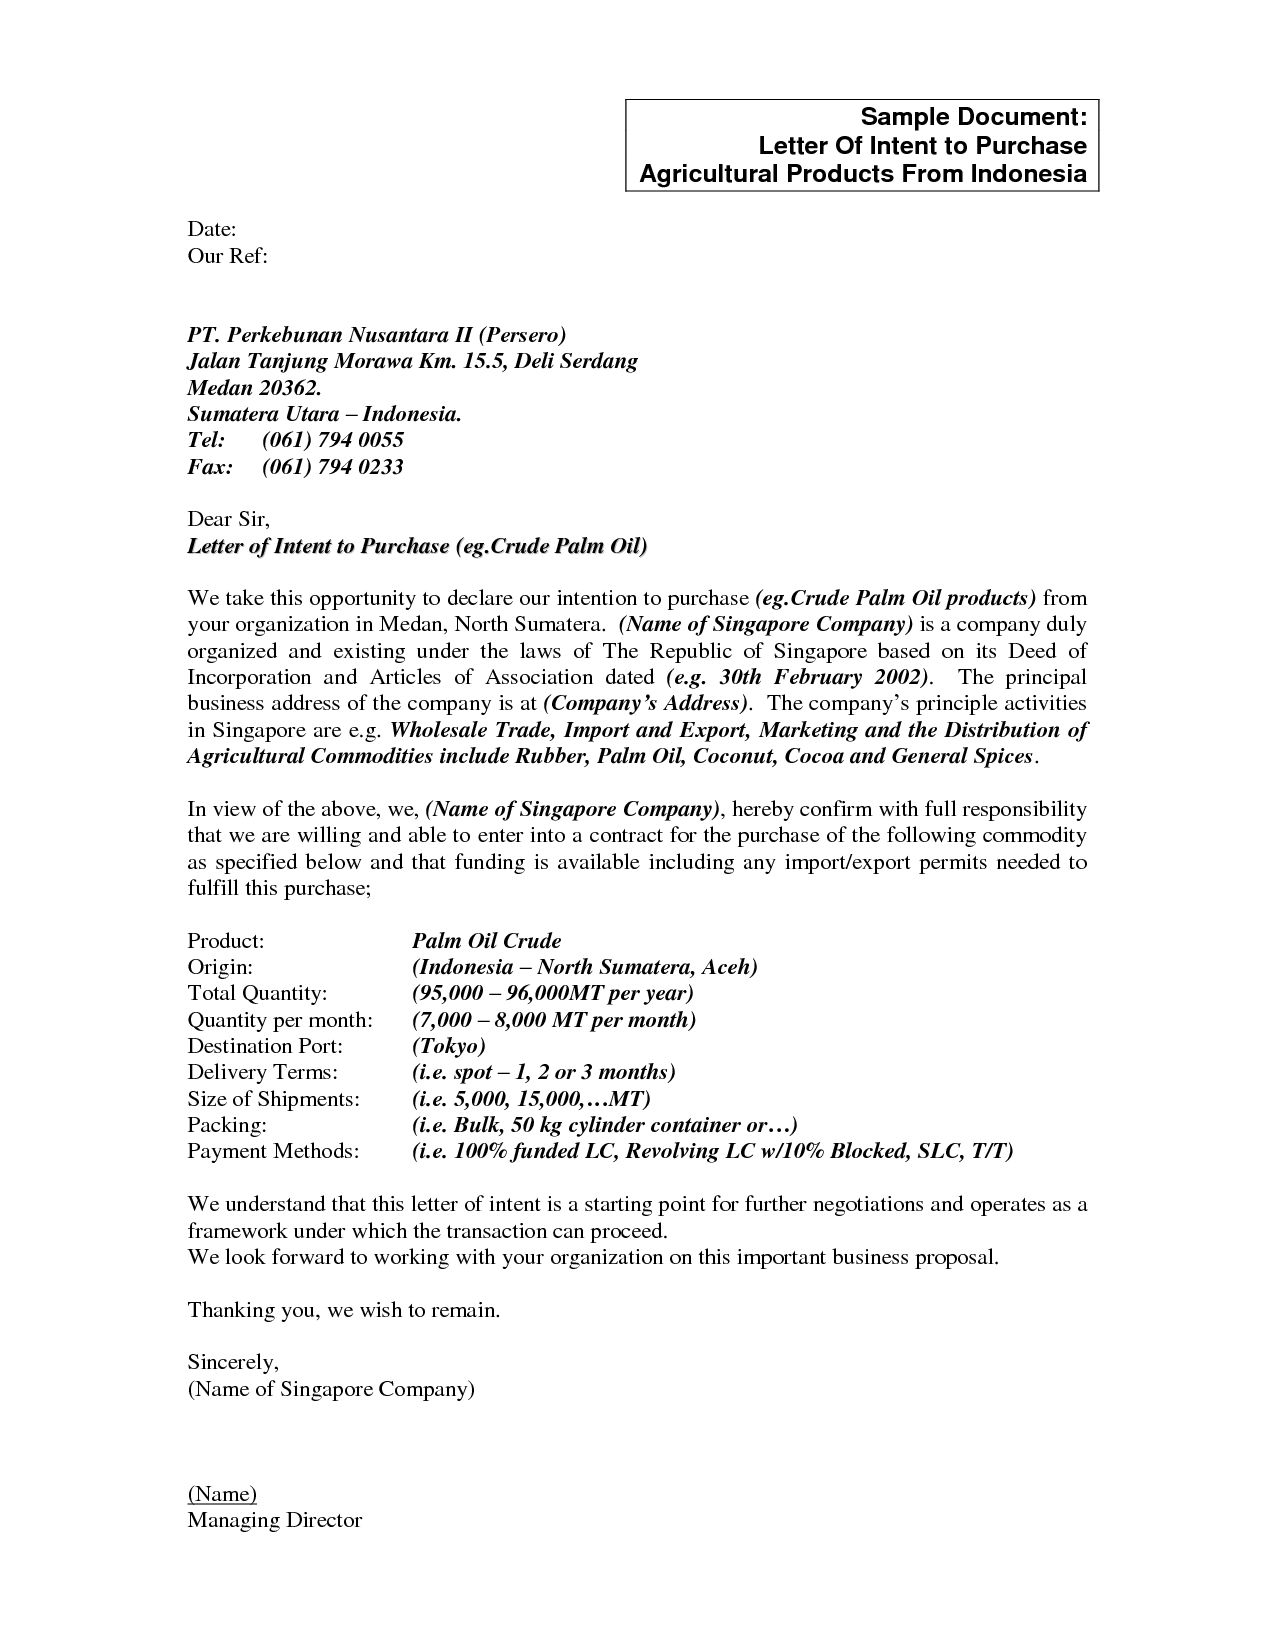 Letter Of Intent to Purchase Business Template Free - Letter Intent to Purchase Product S Highest Quality Best